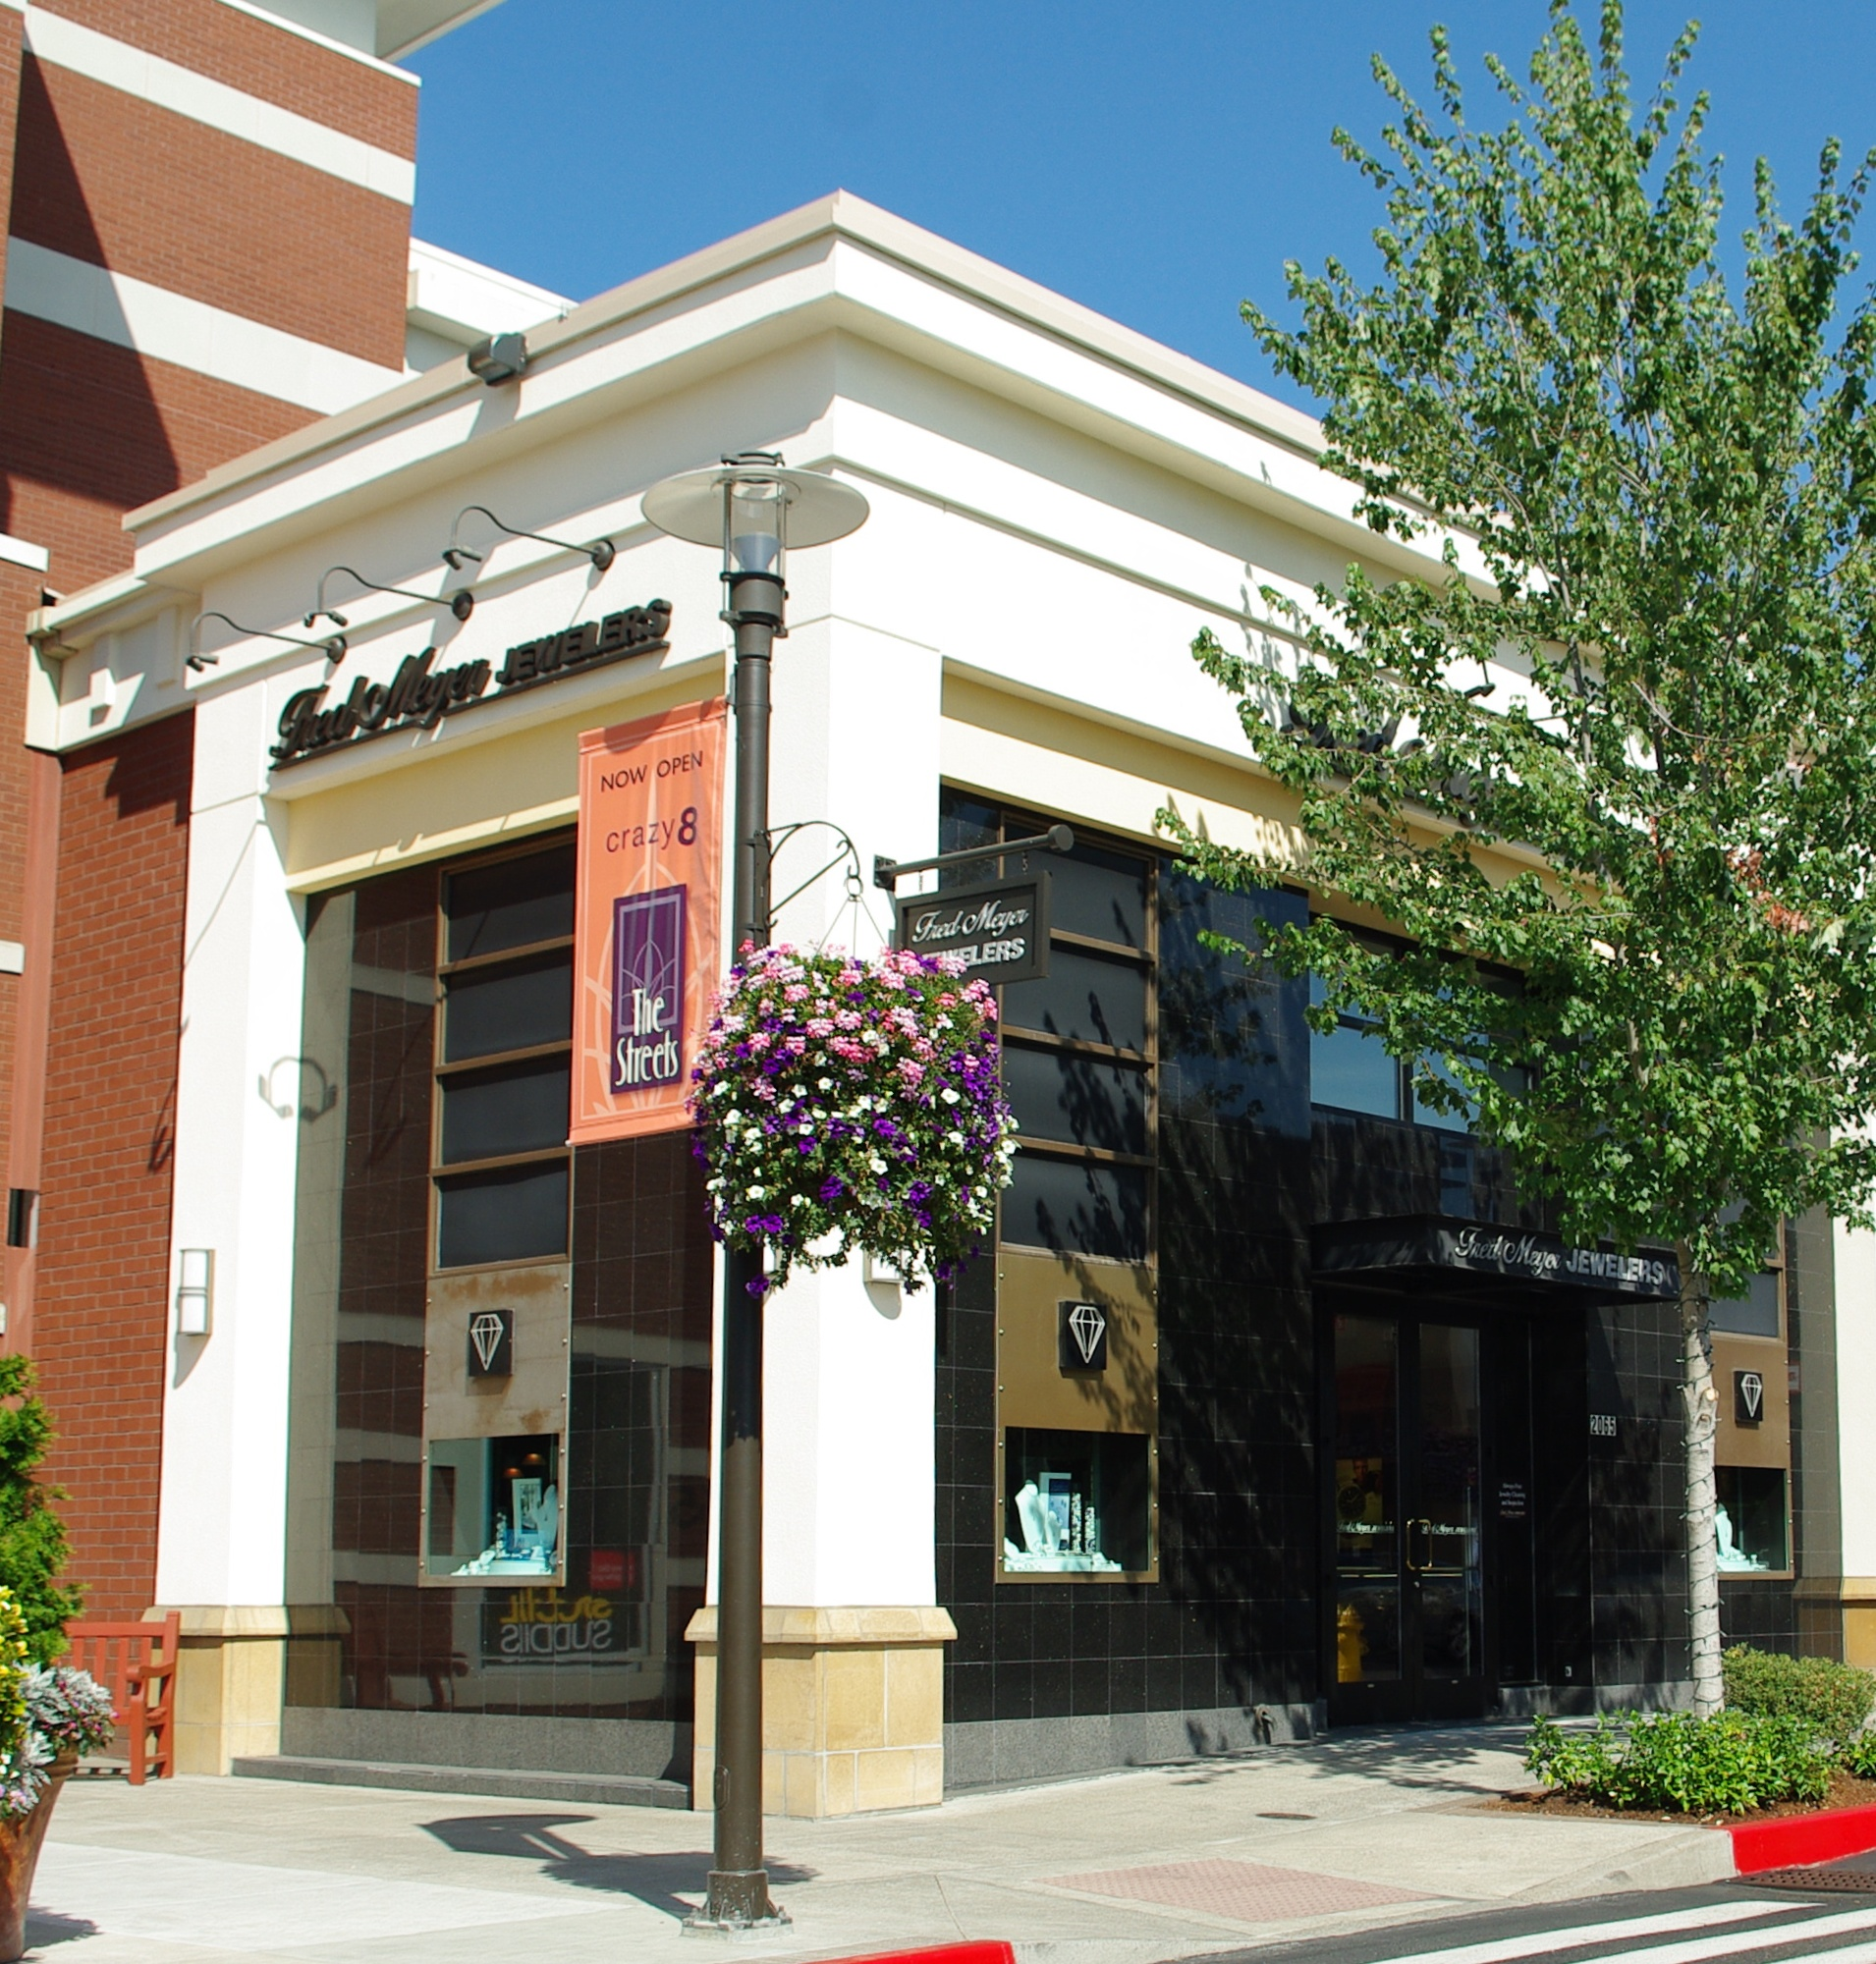 Banana Republic store hours, phone number and map for the STREETS TANASBOURNE location at NW ALLIE AVENUE, HILLSBORO, OR